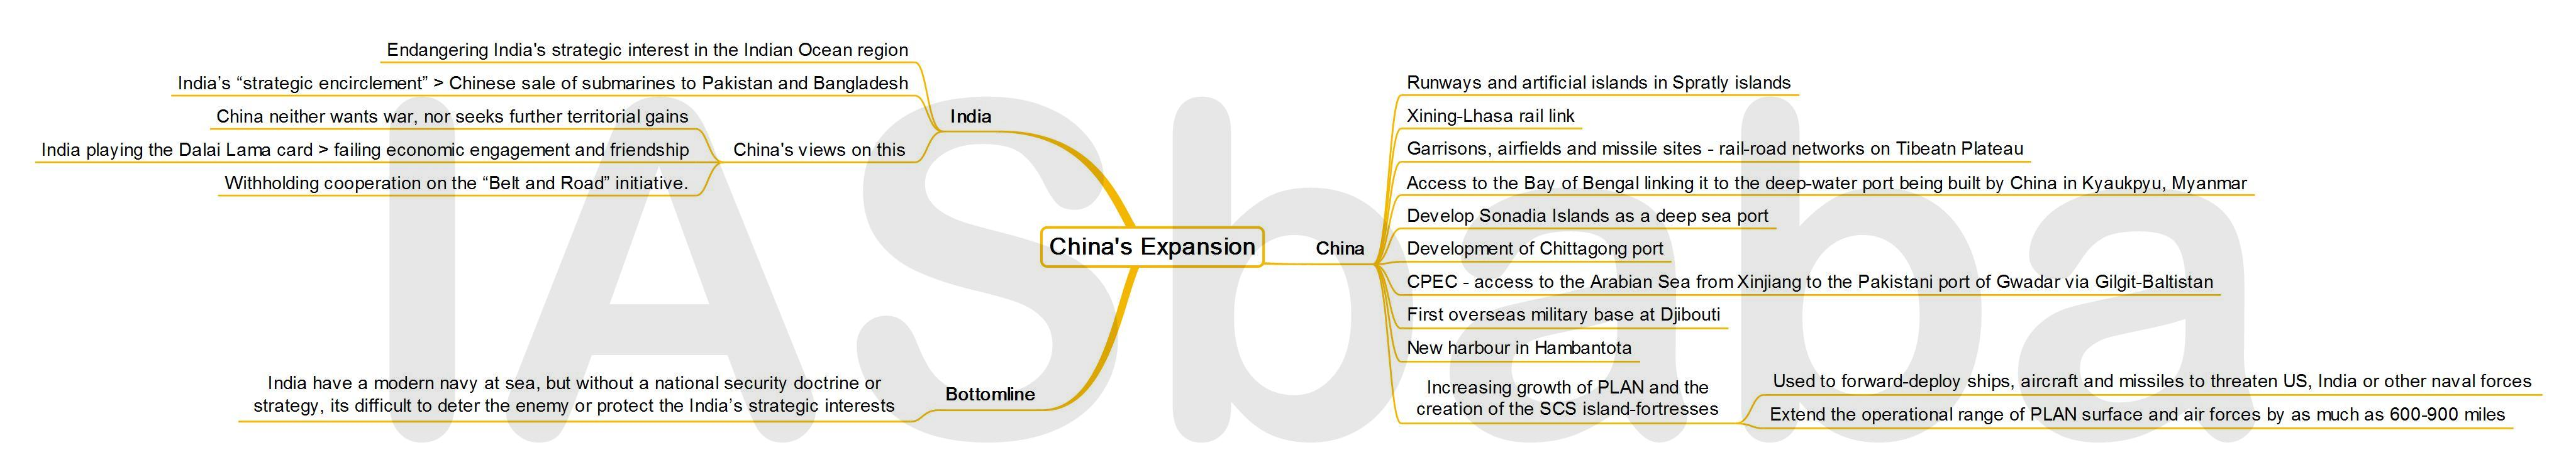 IASbaba's MINDMAP : Issue - China's Expansion